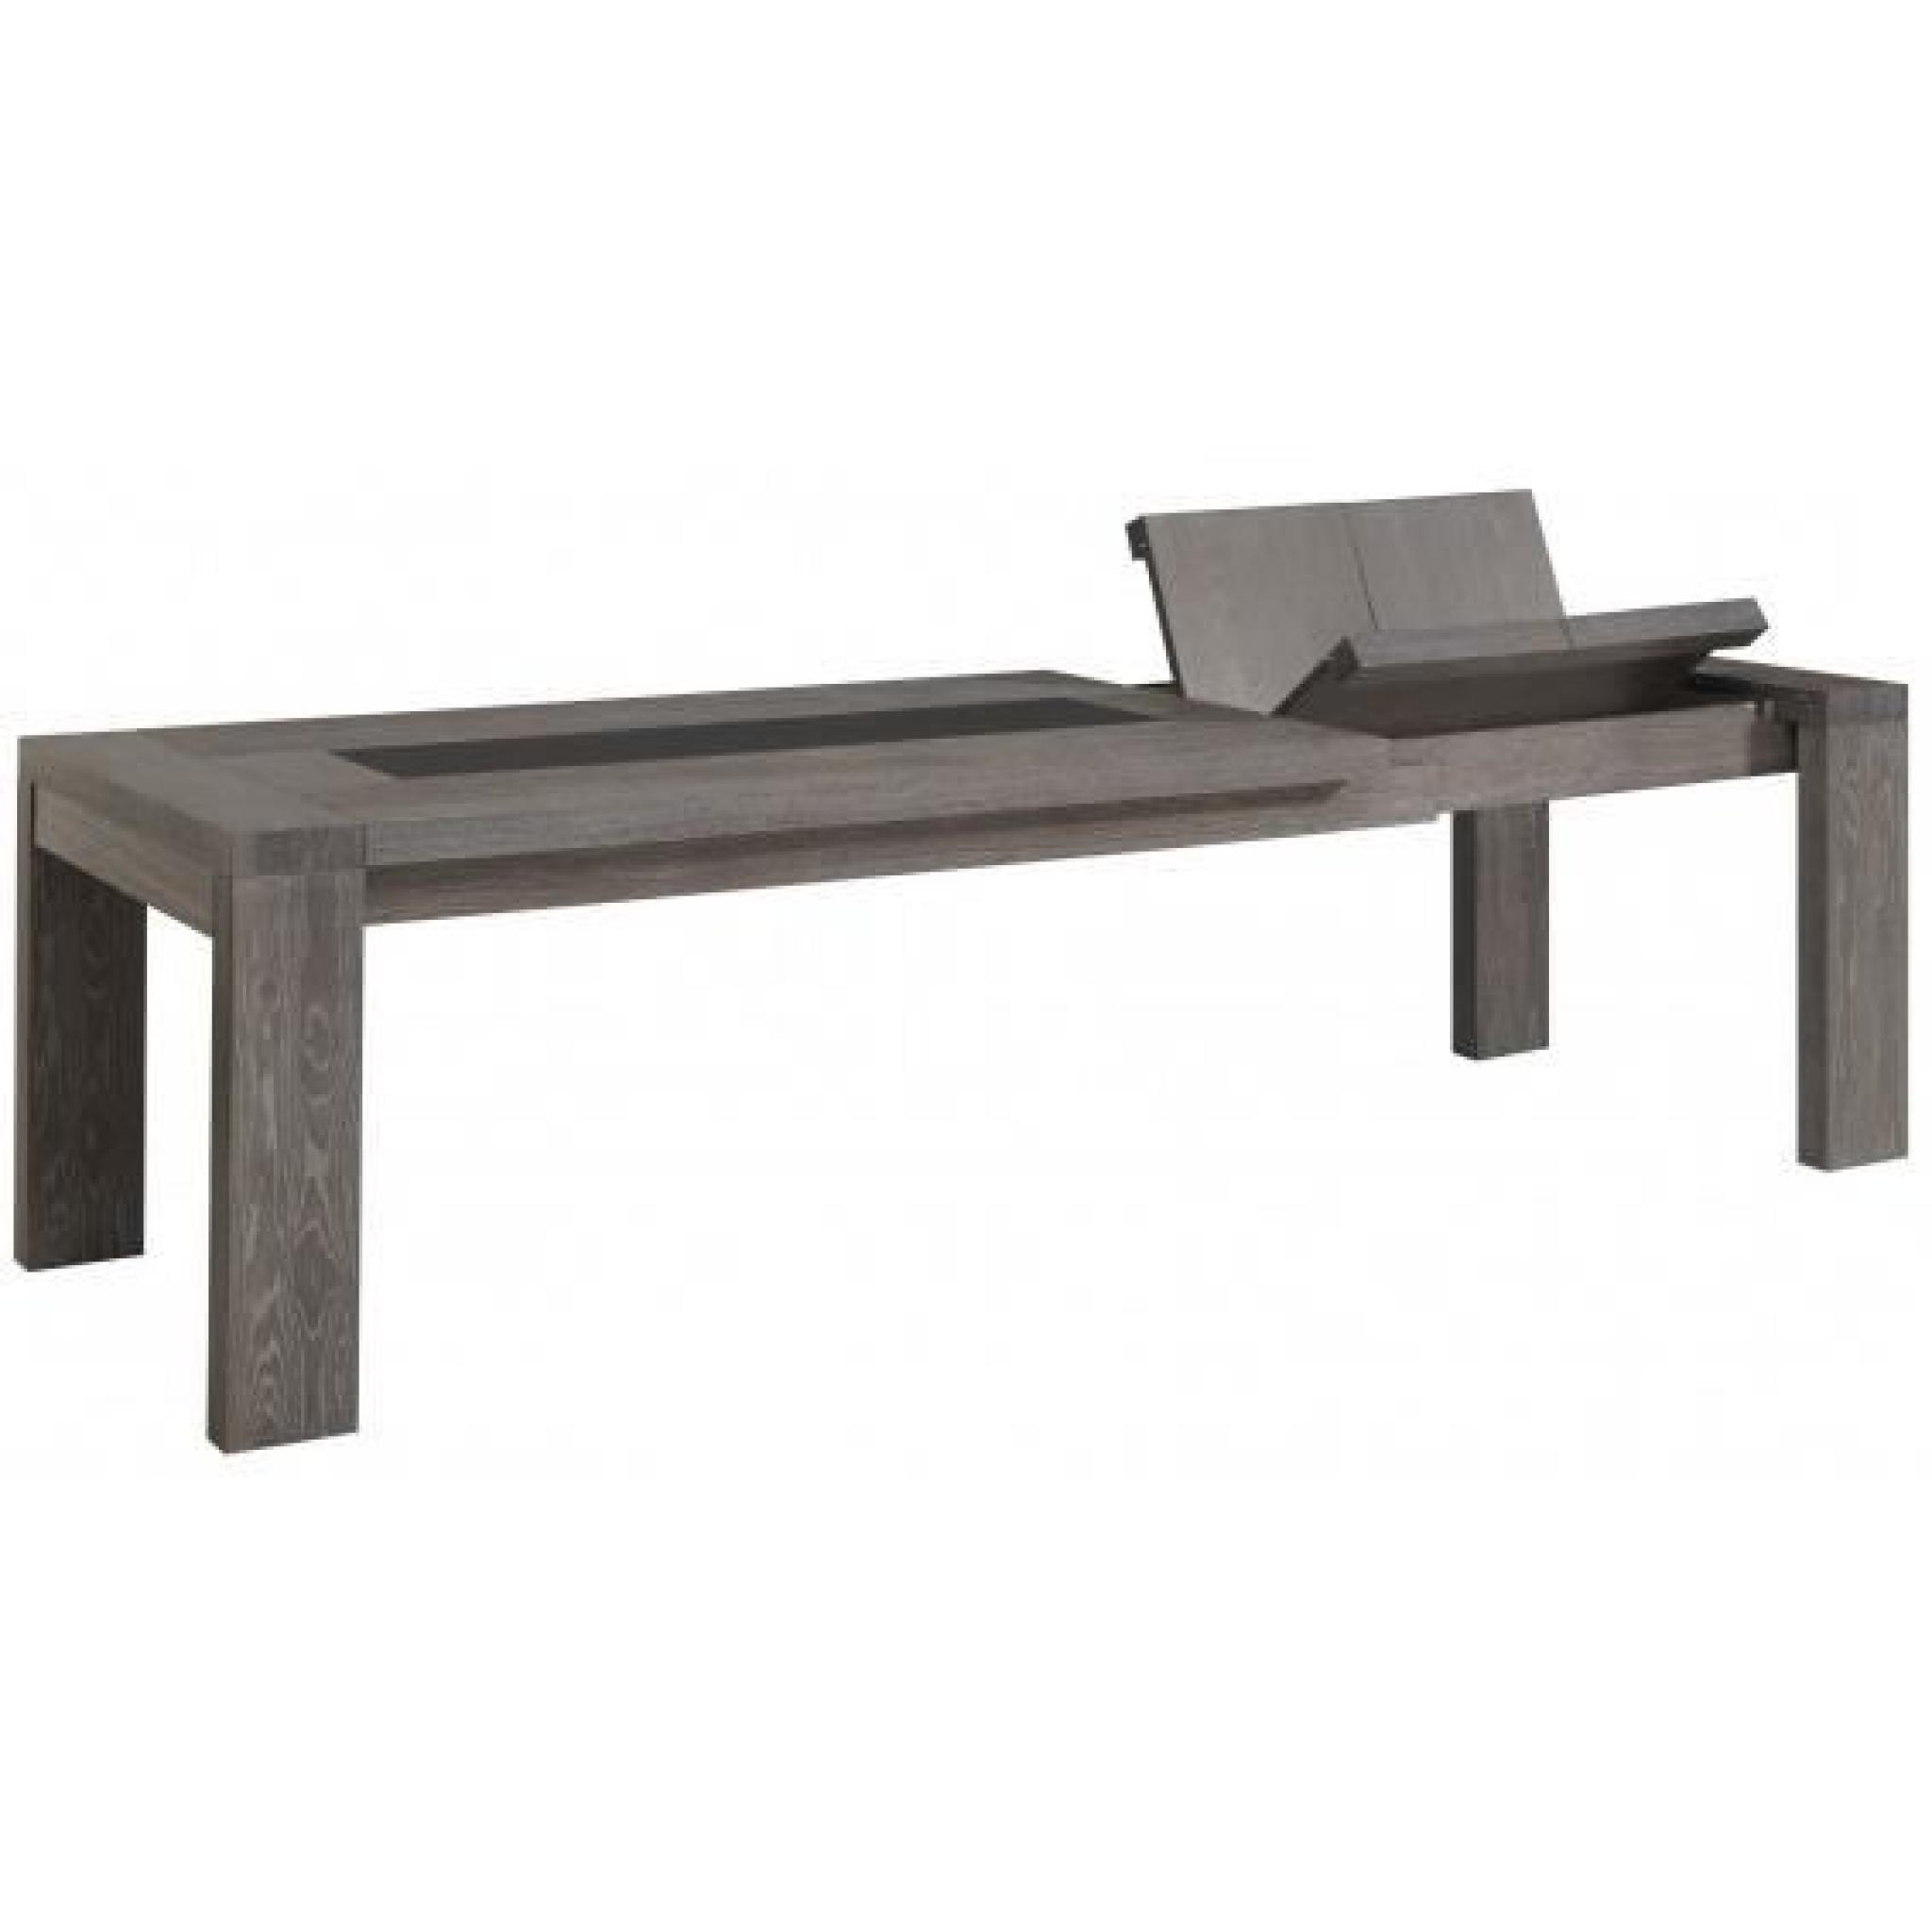 Dayton table rectangulaire avec allonges achat vente Table salle a manger rectangulaire extensible